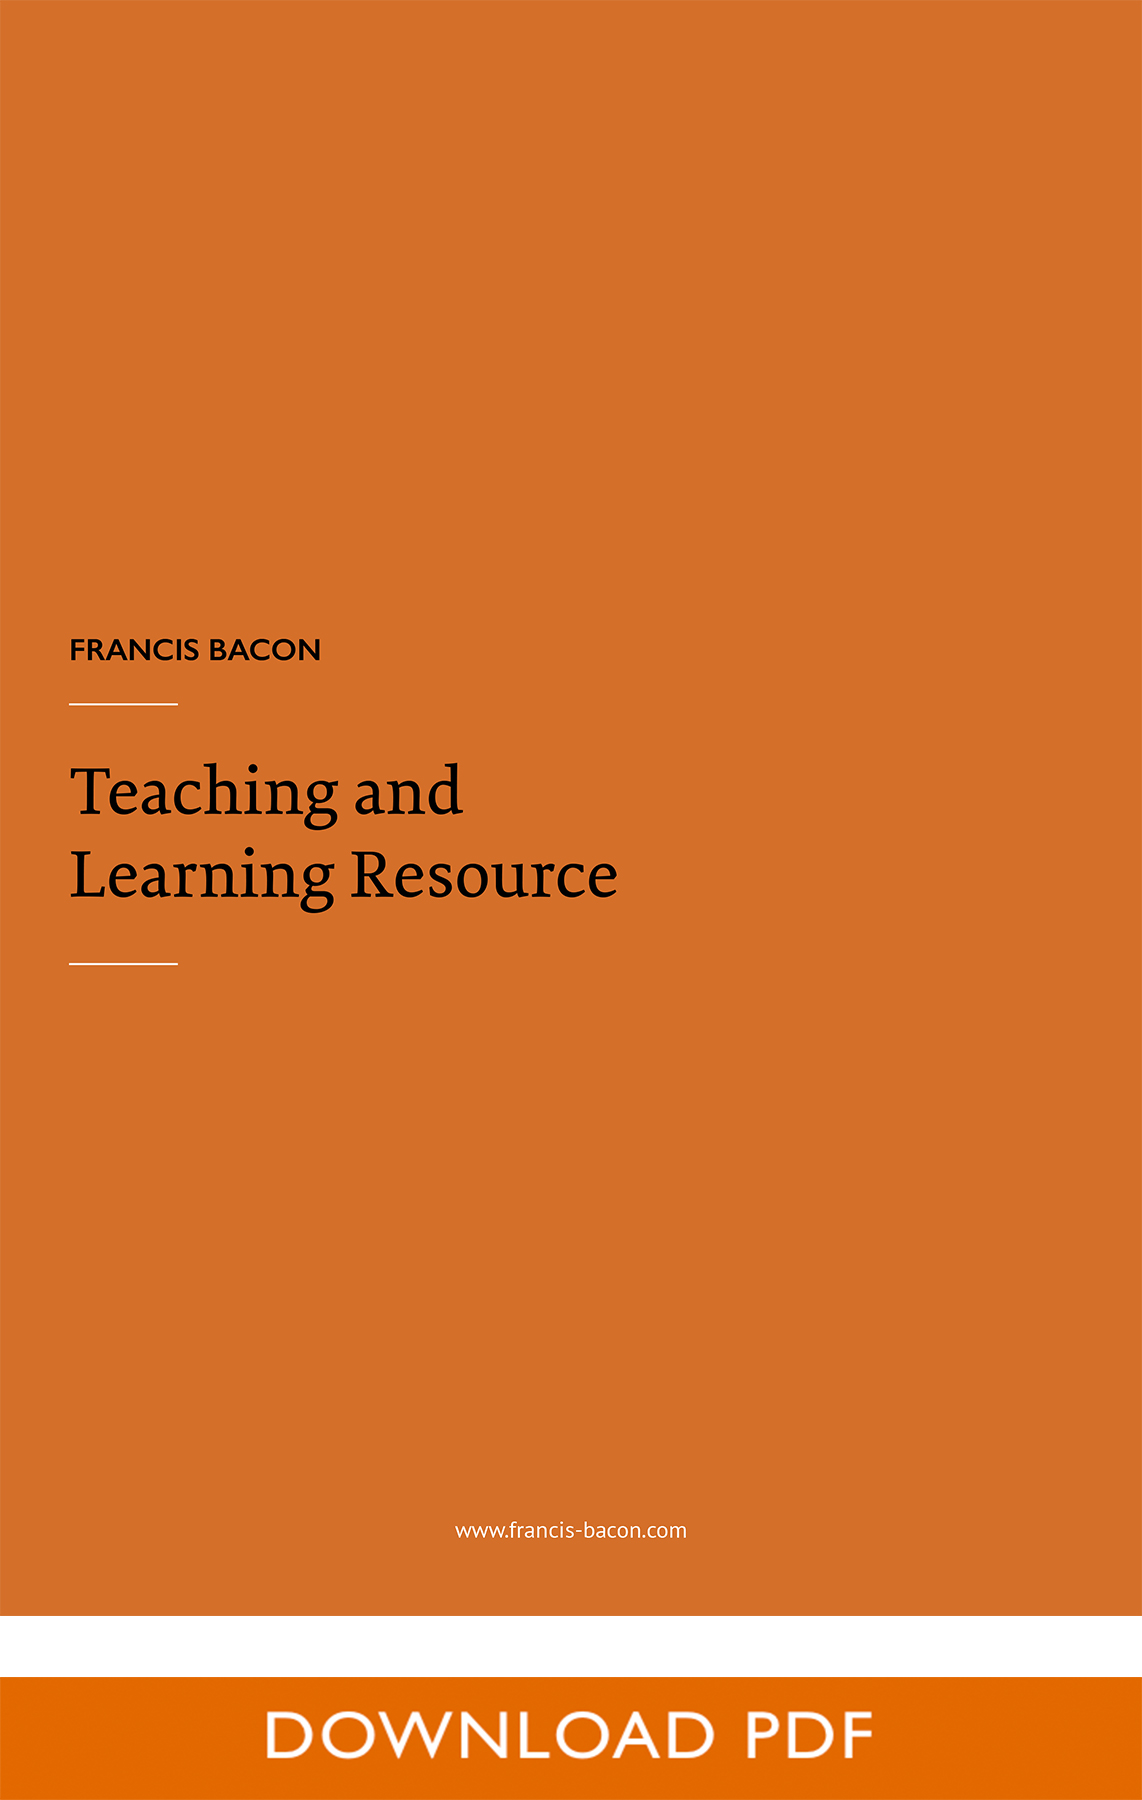 Teaching and Learning resource pdf cover